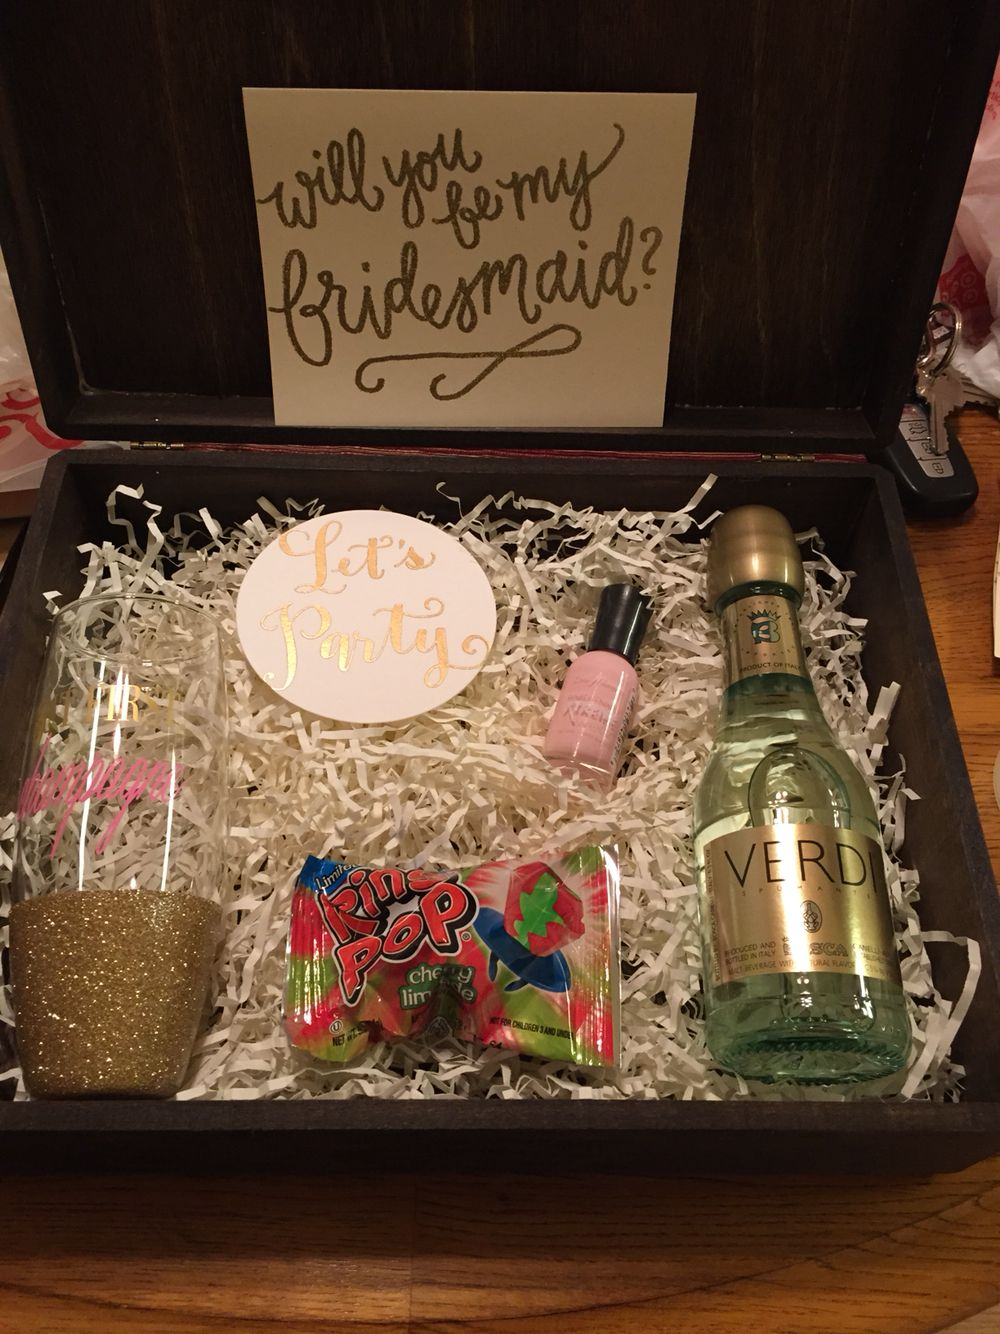 will you be my bridesmaid? how to ask bridesmaid … | Pinteres…